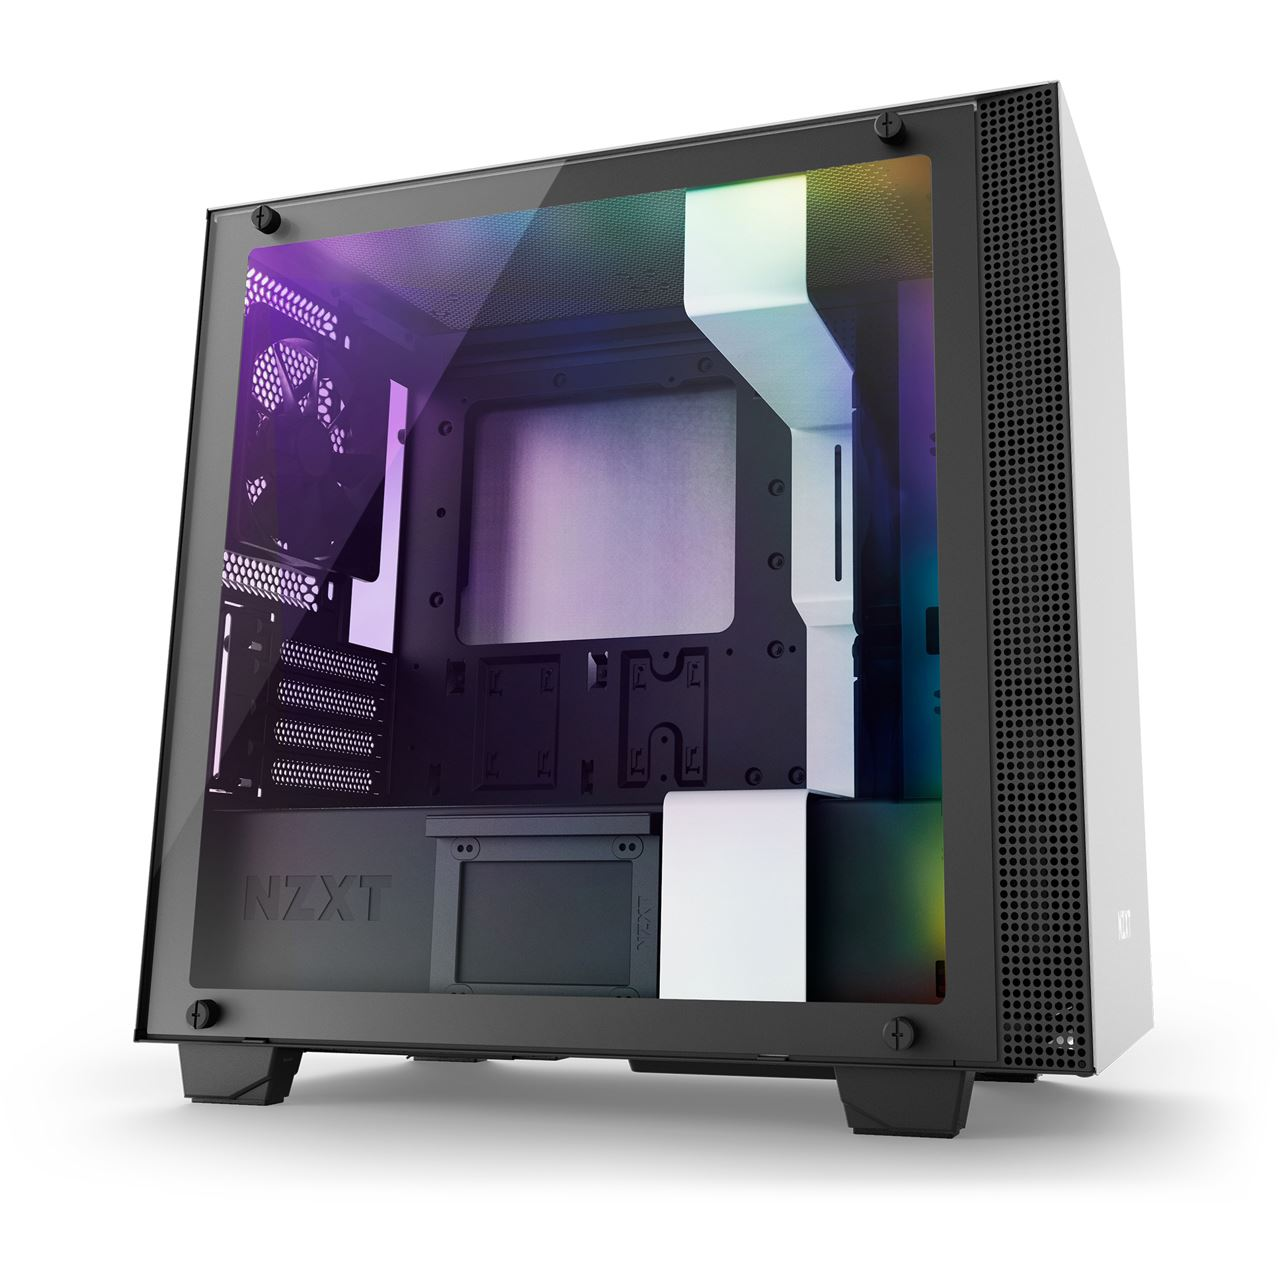 nzxt h400i mit sichtfenster mini tower ohne netzteil weiss. Black Bedroom Furniture Sets. Home Design Ideas